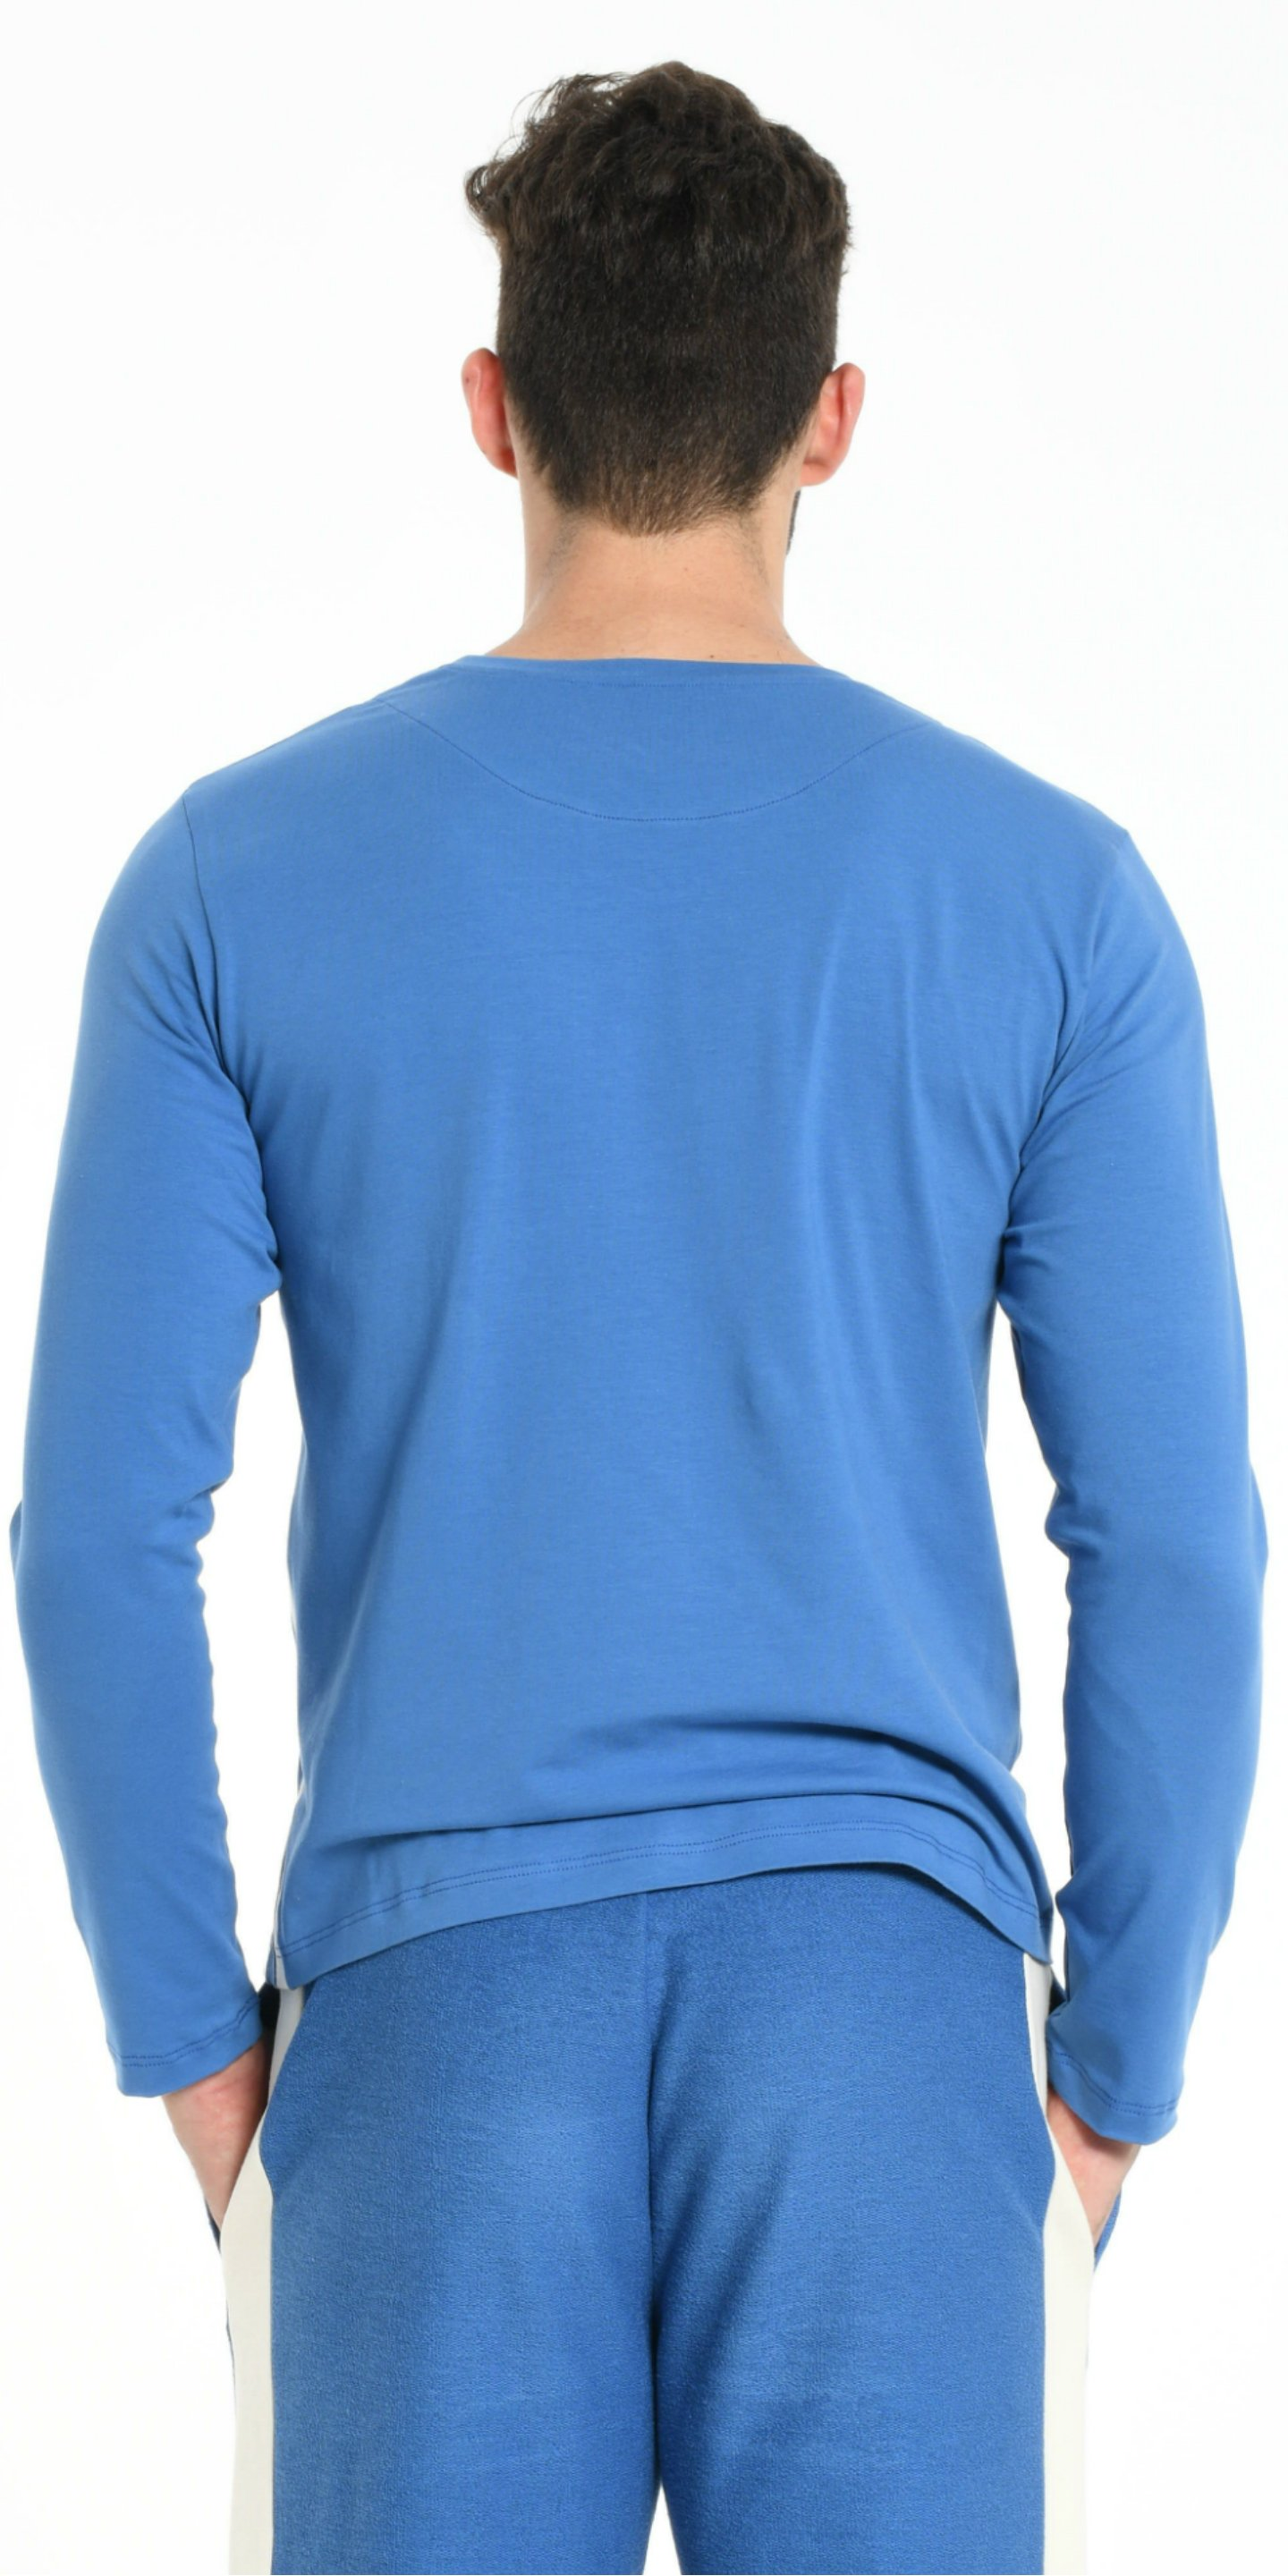 TEE SHIRT LONG SLEEVES BLUE WITH OFFWHITE STRIPS from BEARD & FRINGE